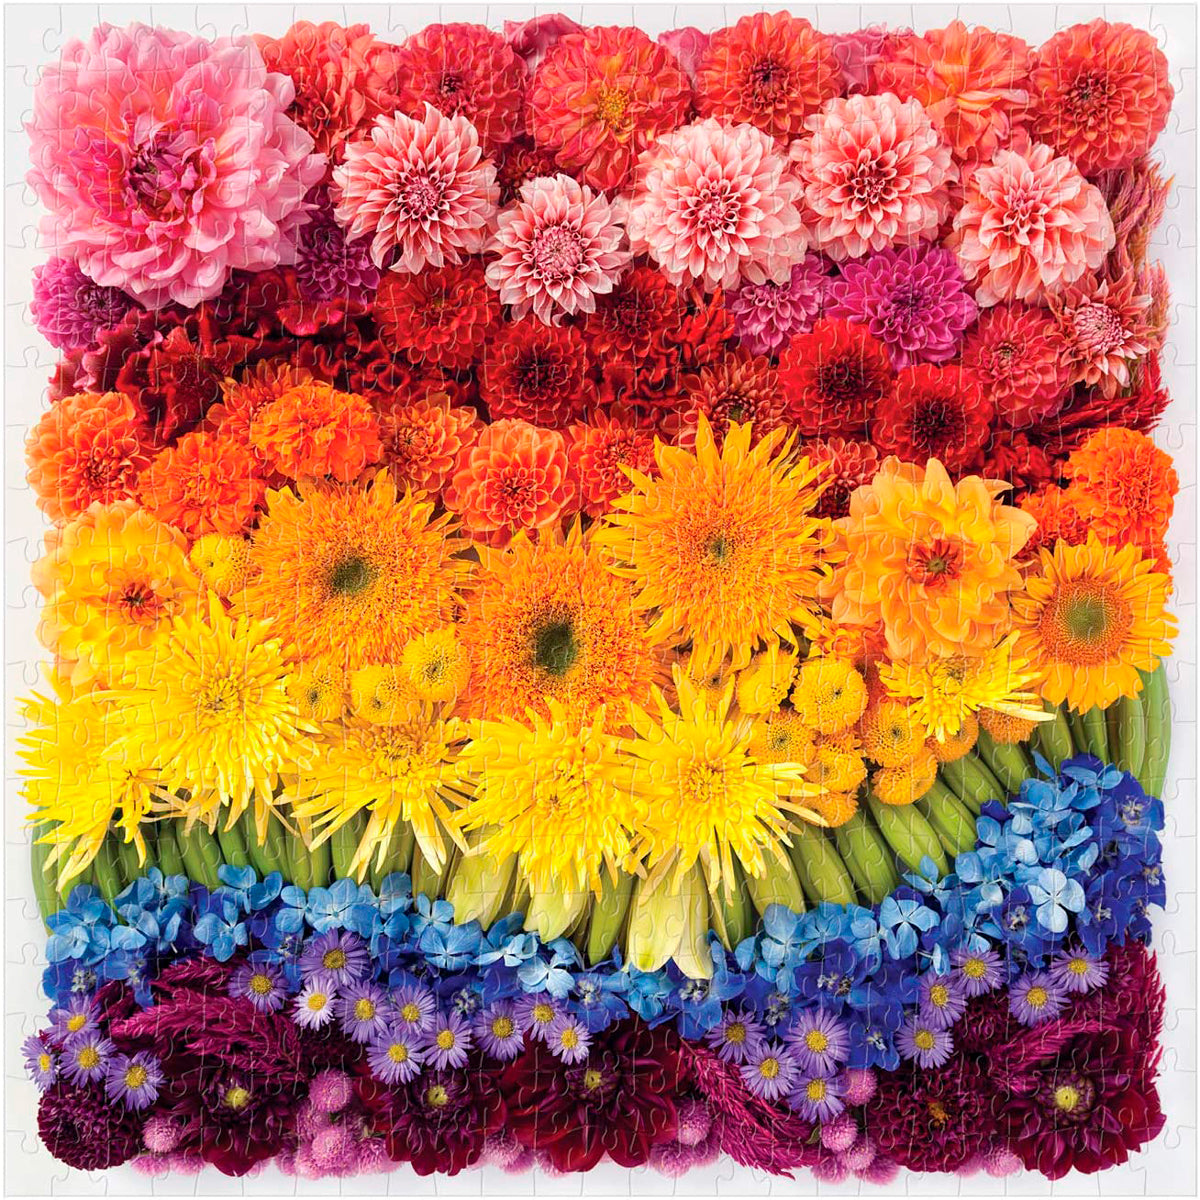 Rainbow Flowers puzzle 500 piece galison